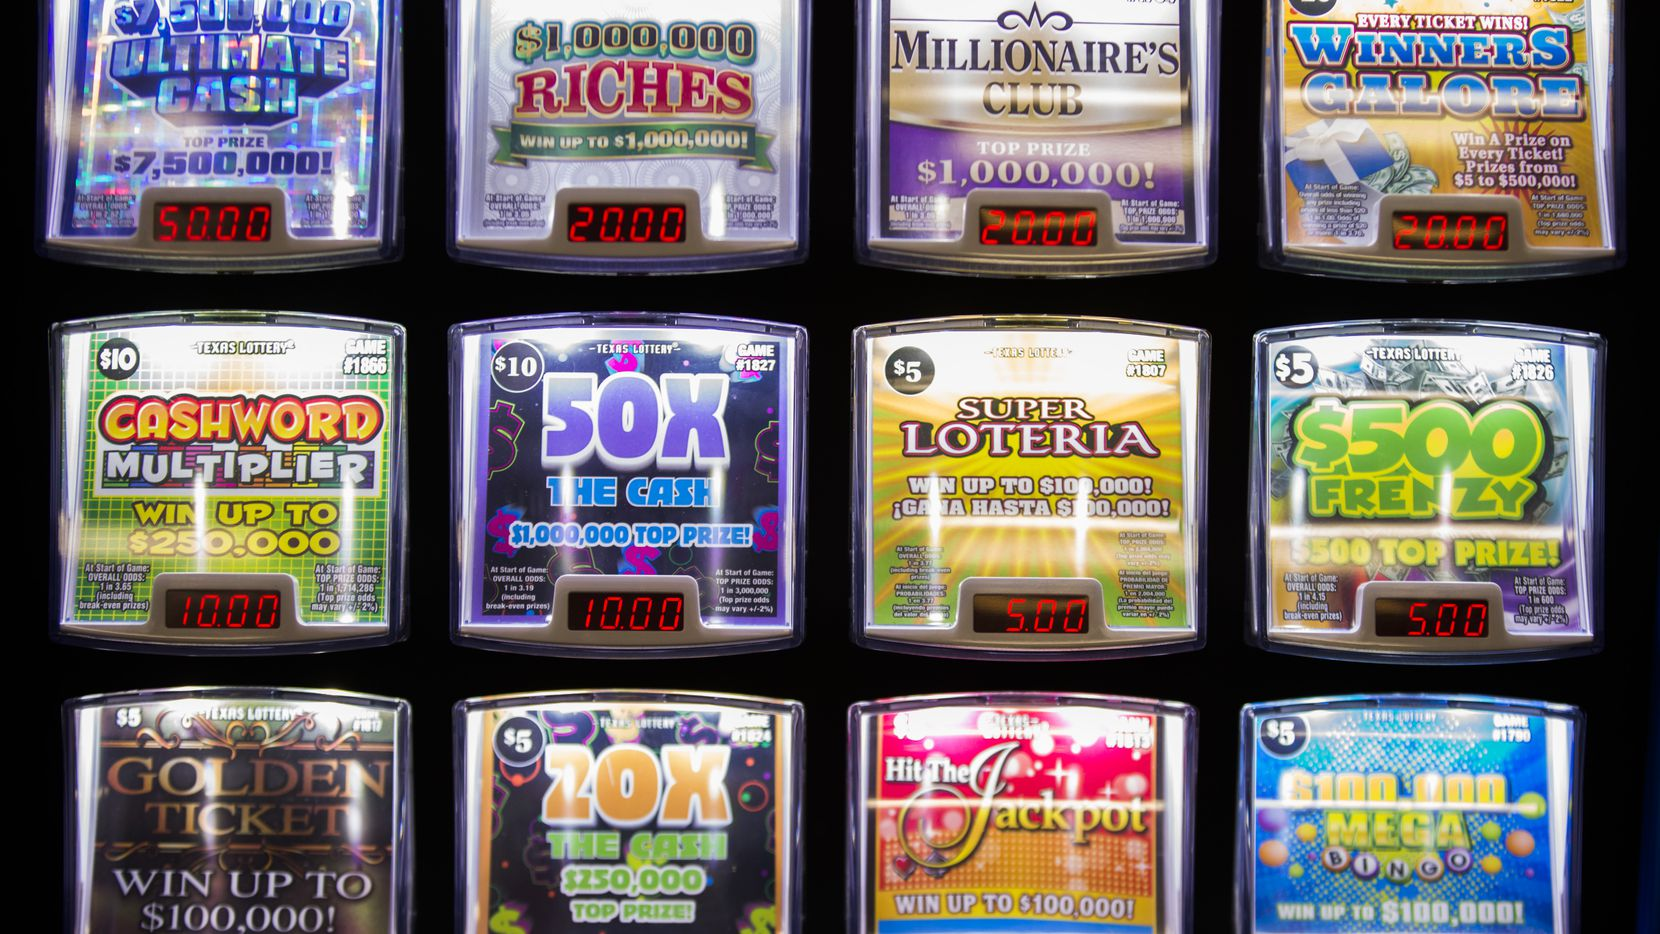 Overnight millionaire: Dallas resident wins big with scratch